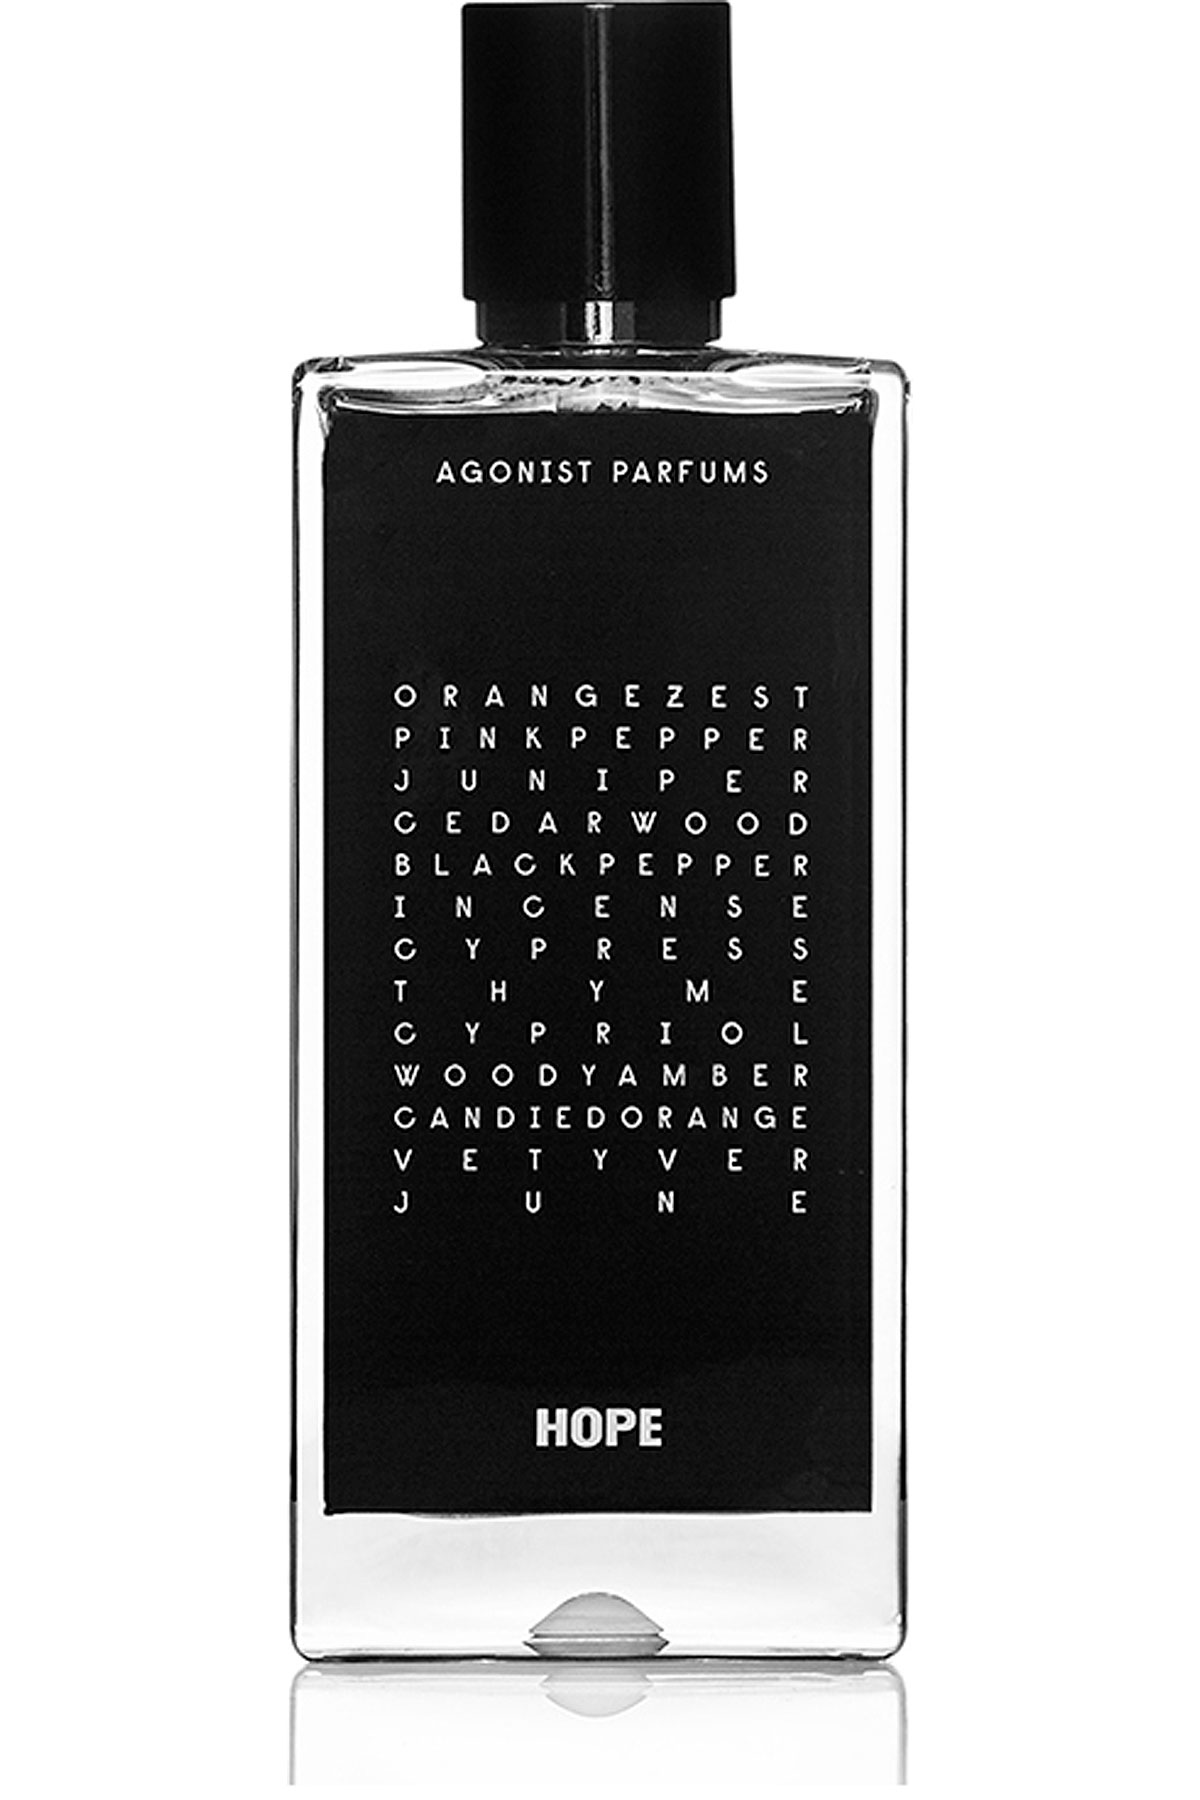 Agonist Fragrances for Women, Hope - Eau De Parfum - 50 Ml, 2019, 50 ml